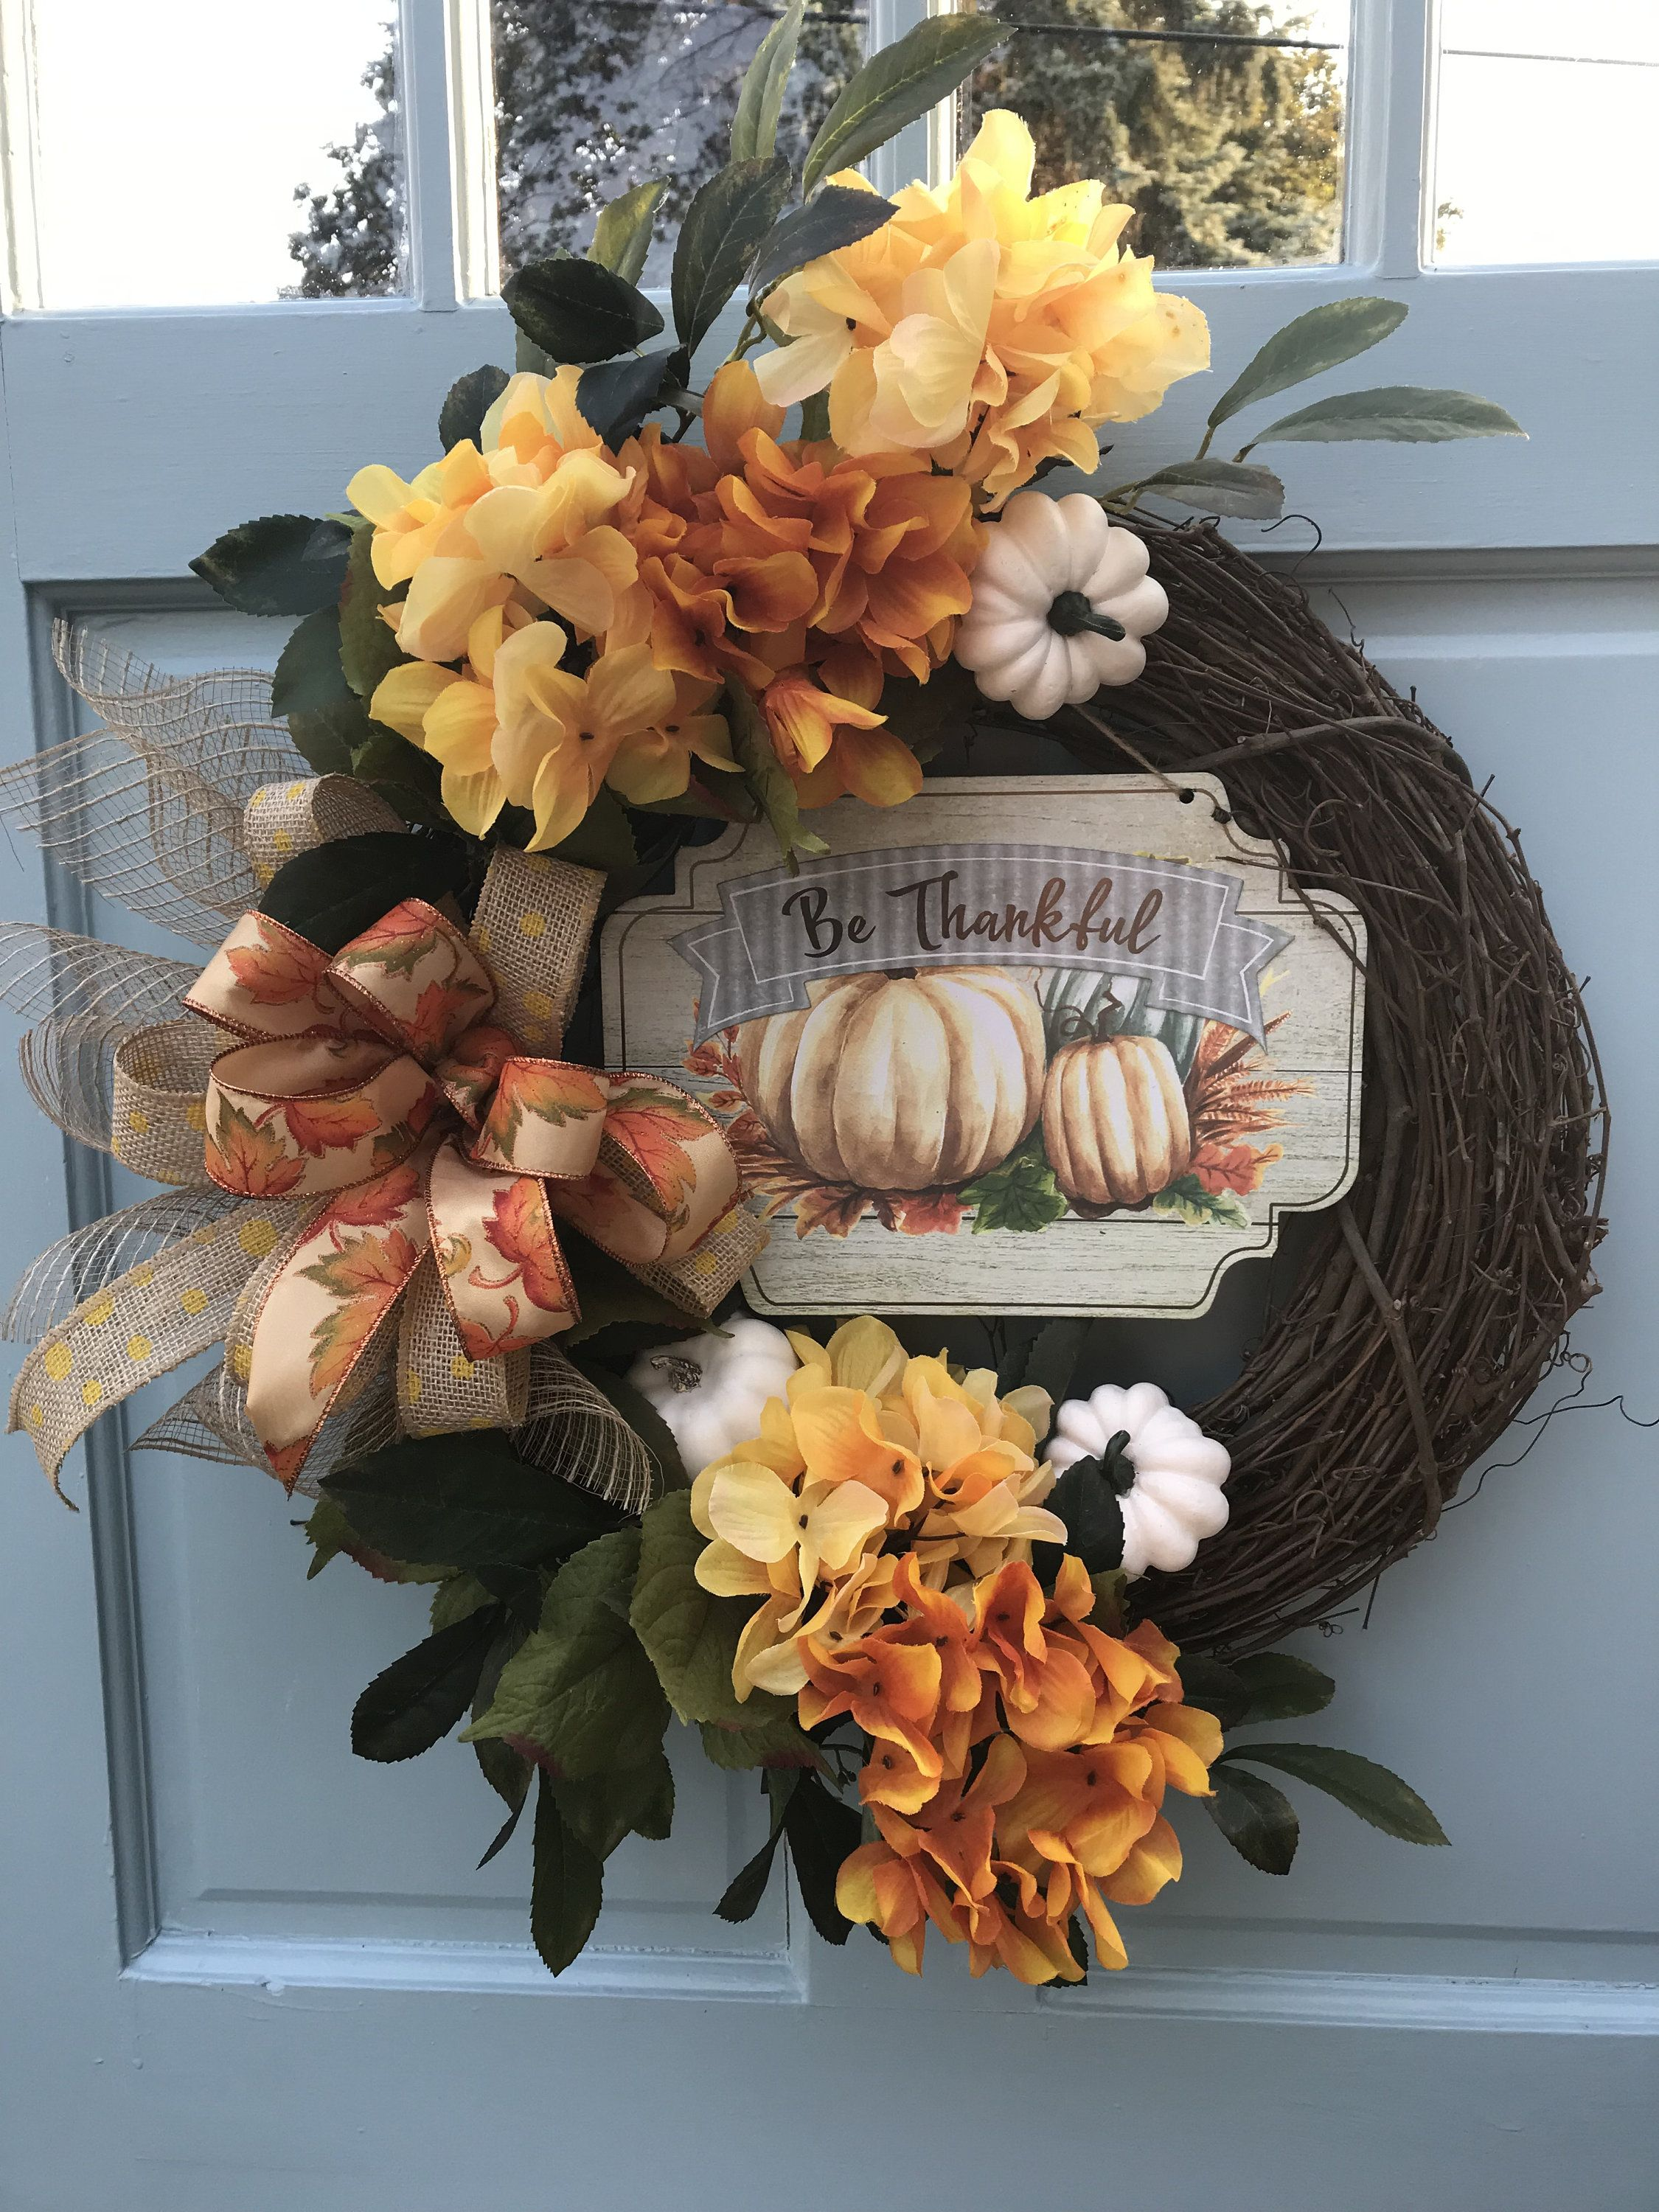 Photo of Fall Orange and Yellow Hydrangea wreath for front door, Autumn Pumpkin Floral Grapevine Wreath for Door, Be Thankful wreath for front door,